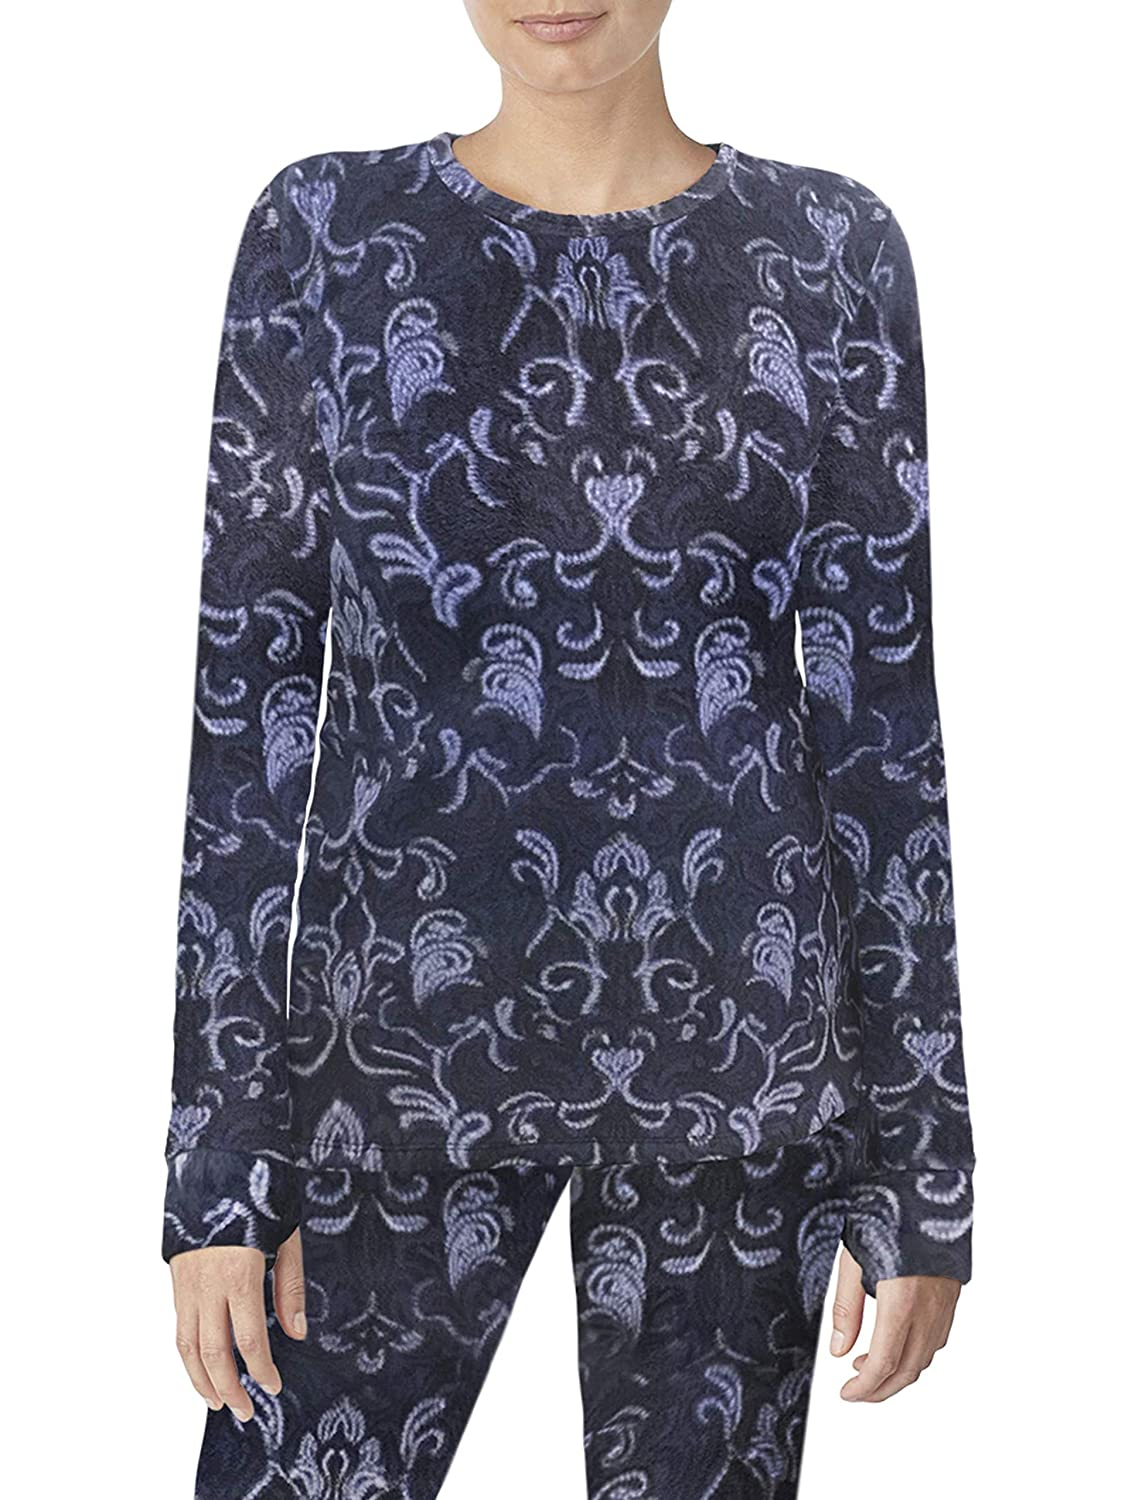 Geo Floral Cuddl Duds ClimateRight Long Sleeve Crew Stretch Fleece